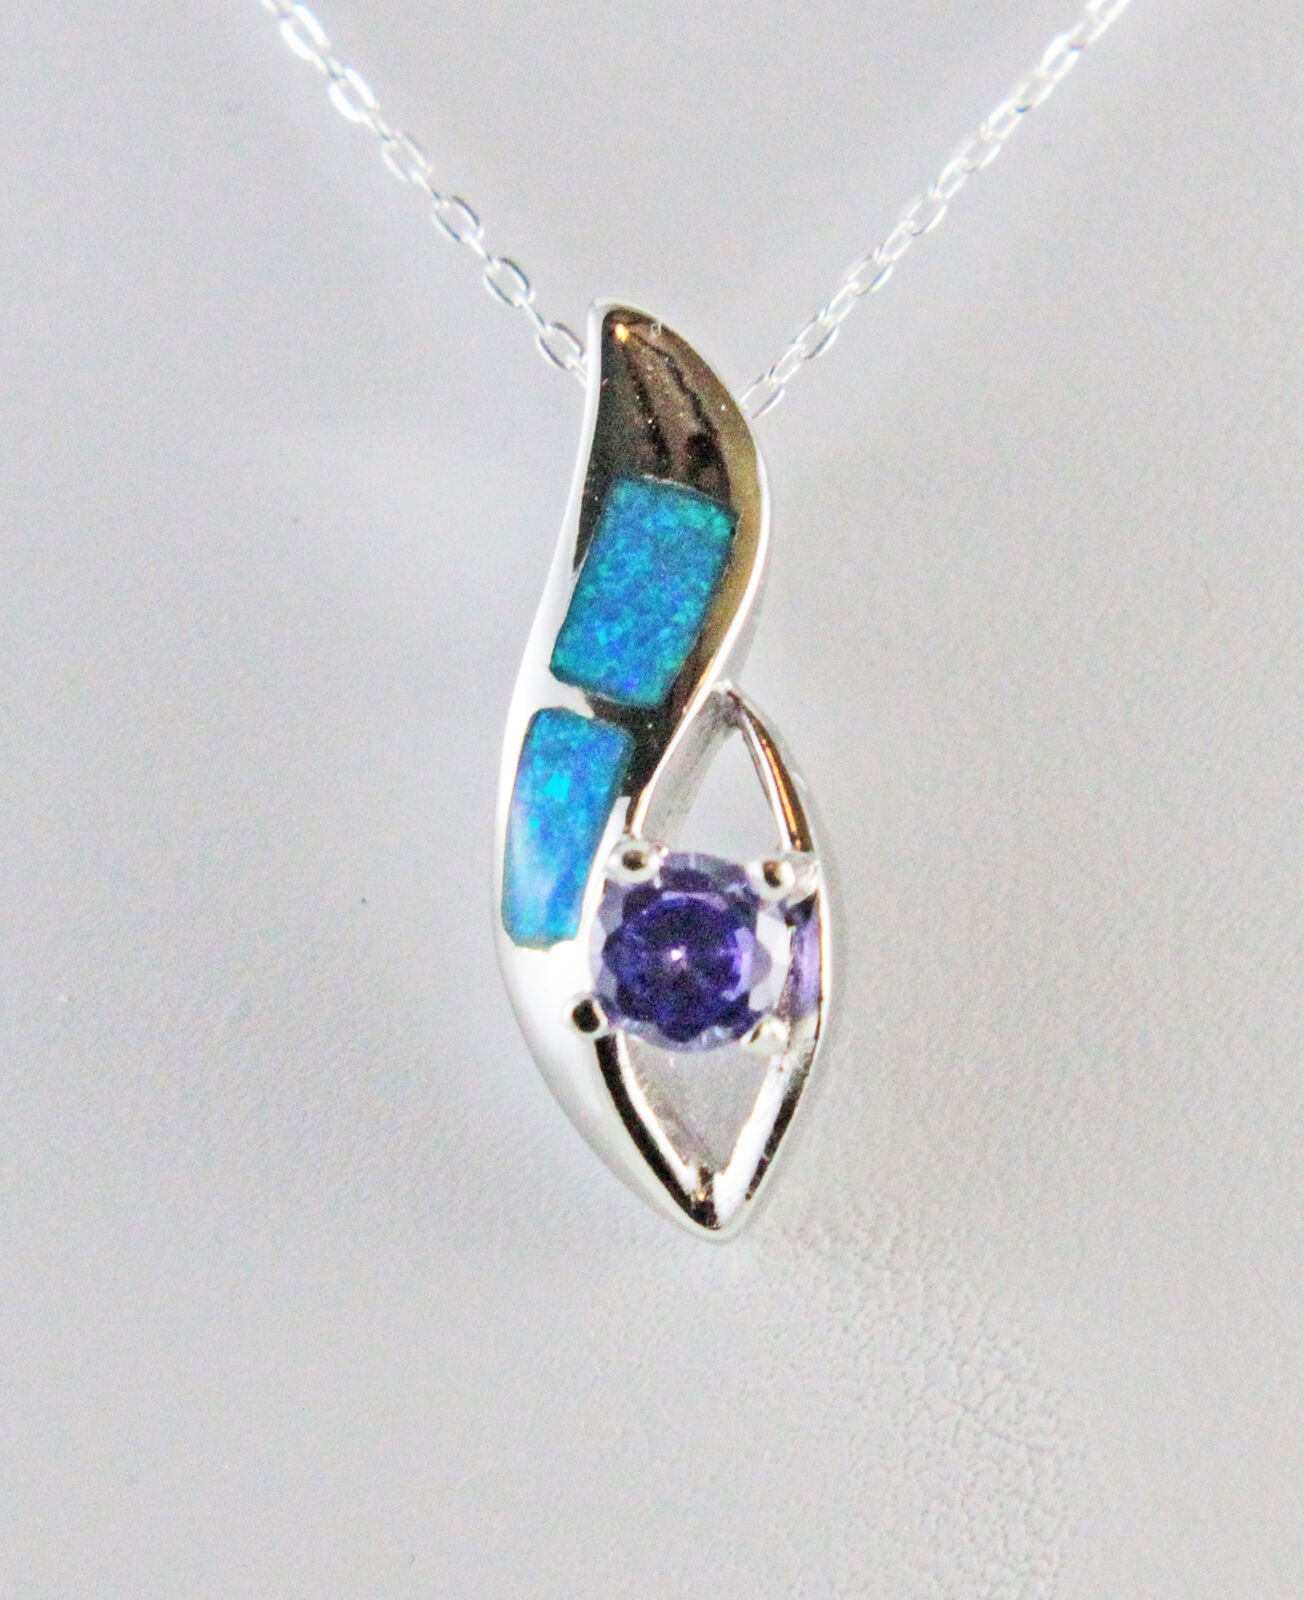 bluee Fire Opal Round Amethyst 5 mm w  18  Flat Cable Chain 50% Off Retail